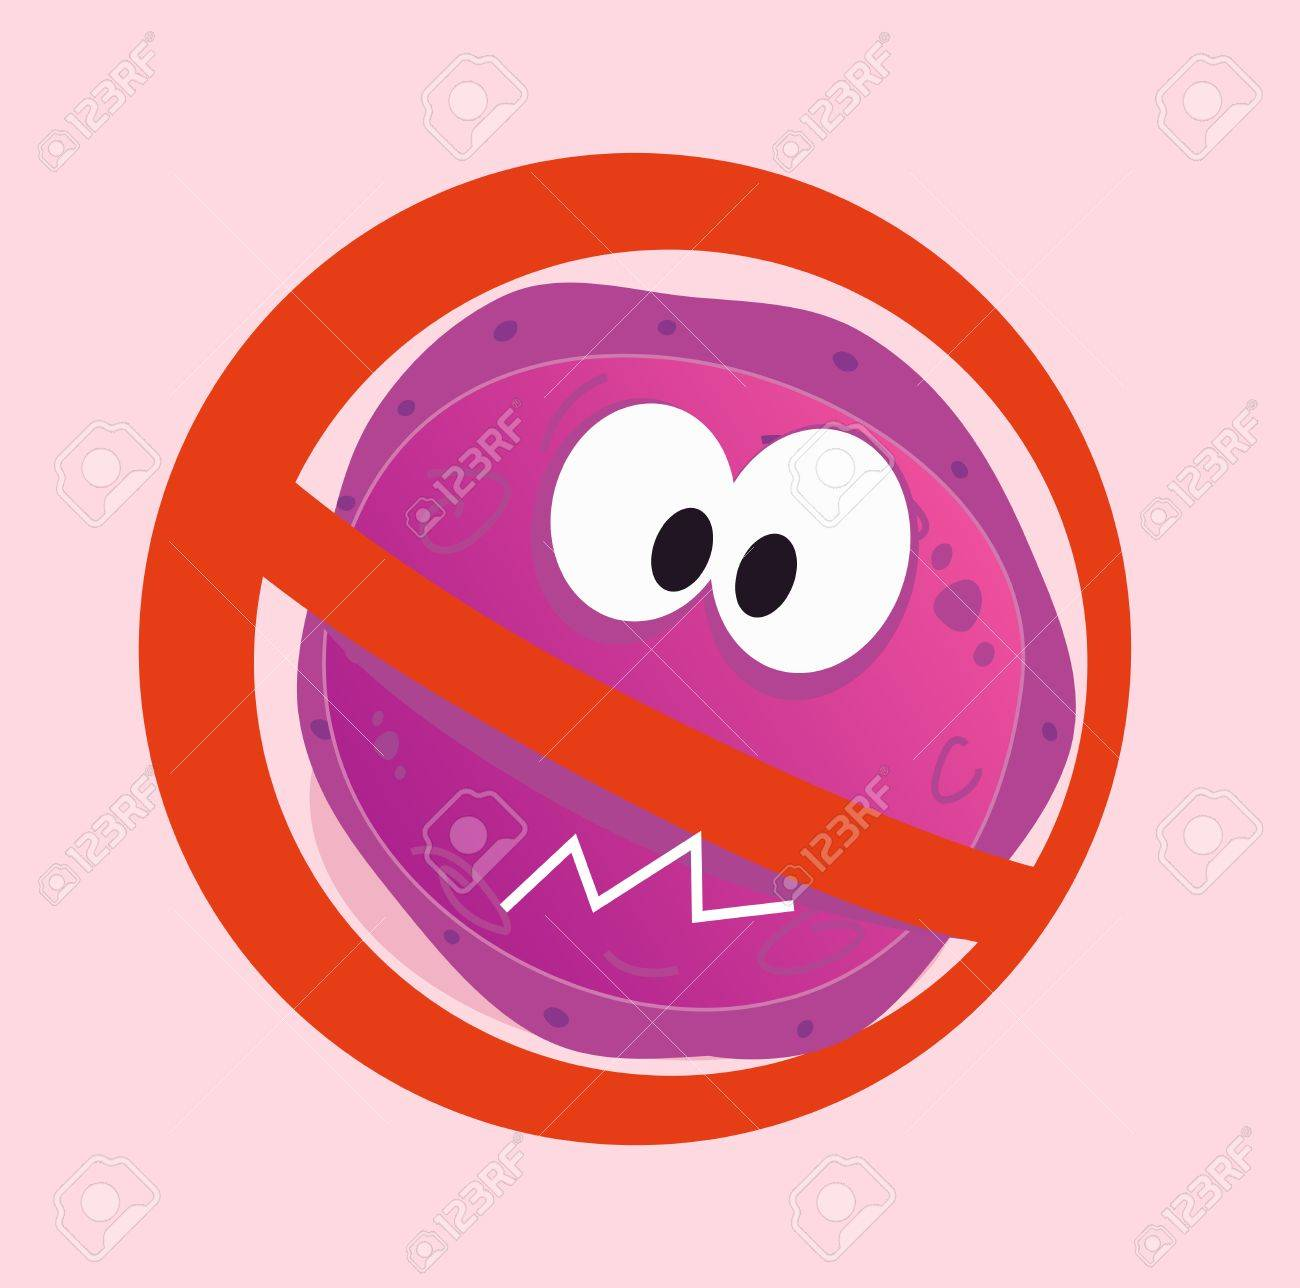 Stop virus - aids virus in red alert sign. Stop virus warning sign.  illustration of aids virus in red alert circle isolated on pink background. Stock Vector - 7026884